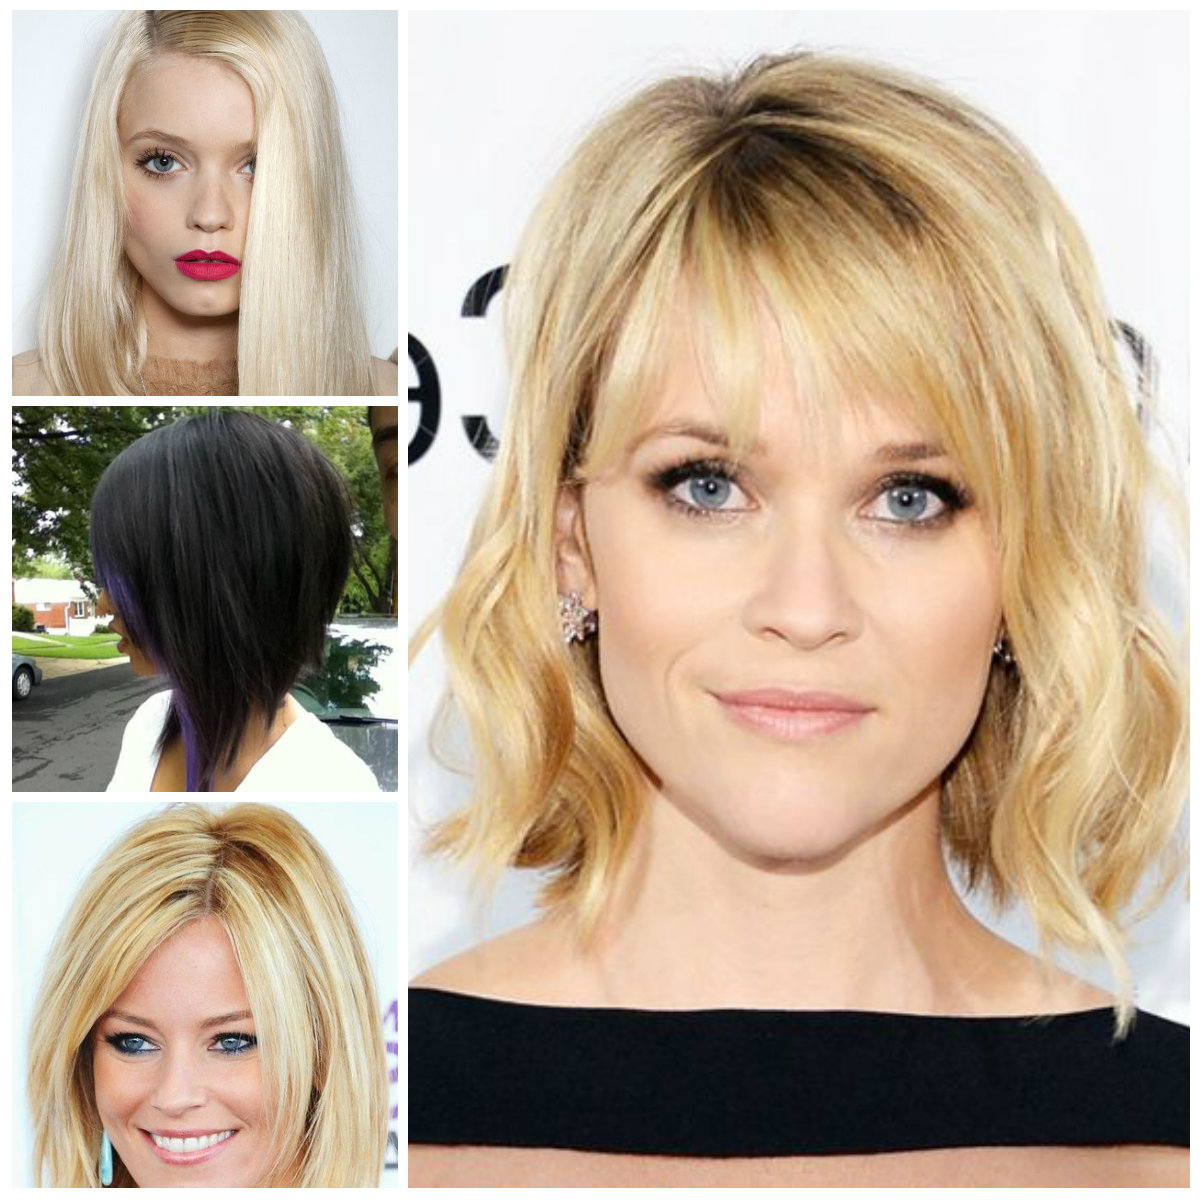 Layered Hairstyles For Short To Medium Length Hair – Hairstyle For For Short To Medium Haircuts (View 3 of 25)